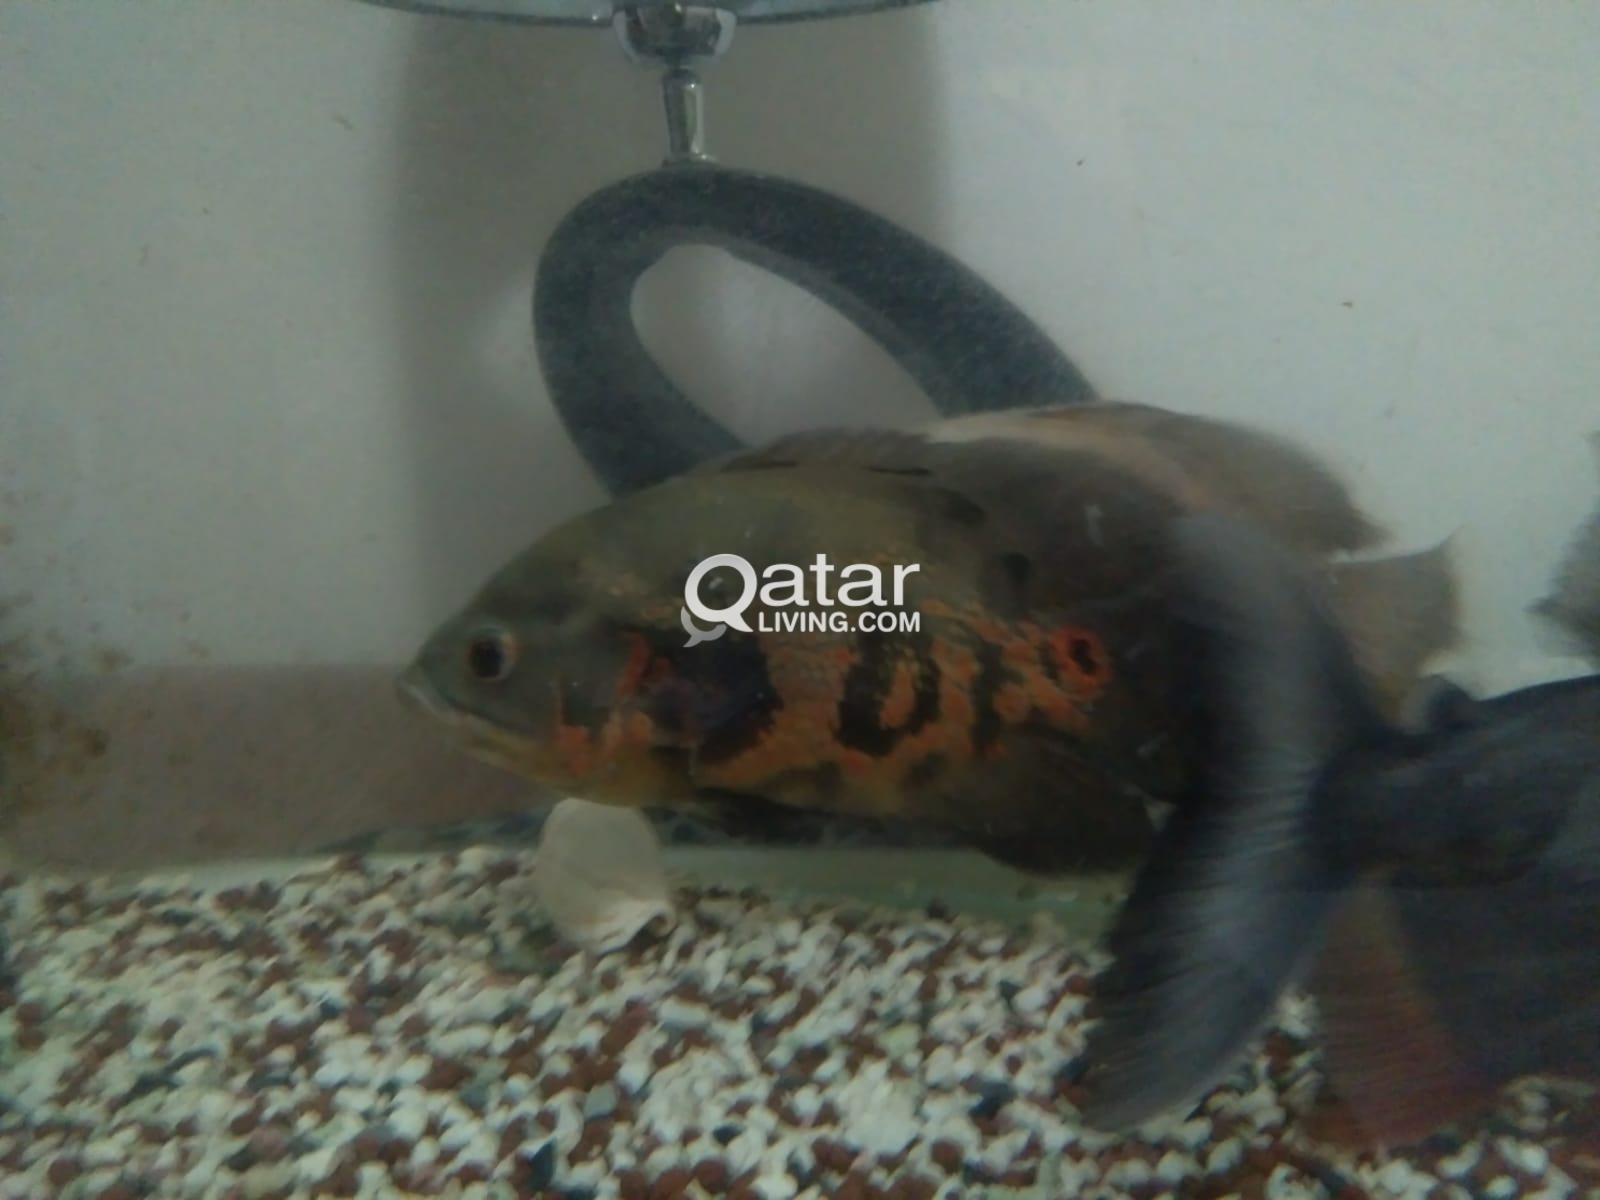 For Sale Piranha fish & Oscar fish | Qatar Living